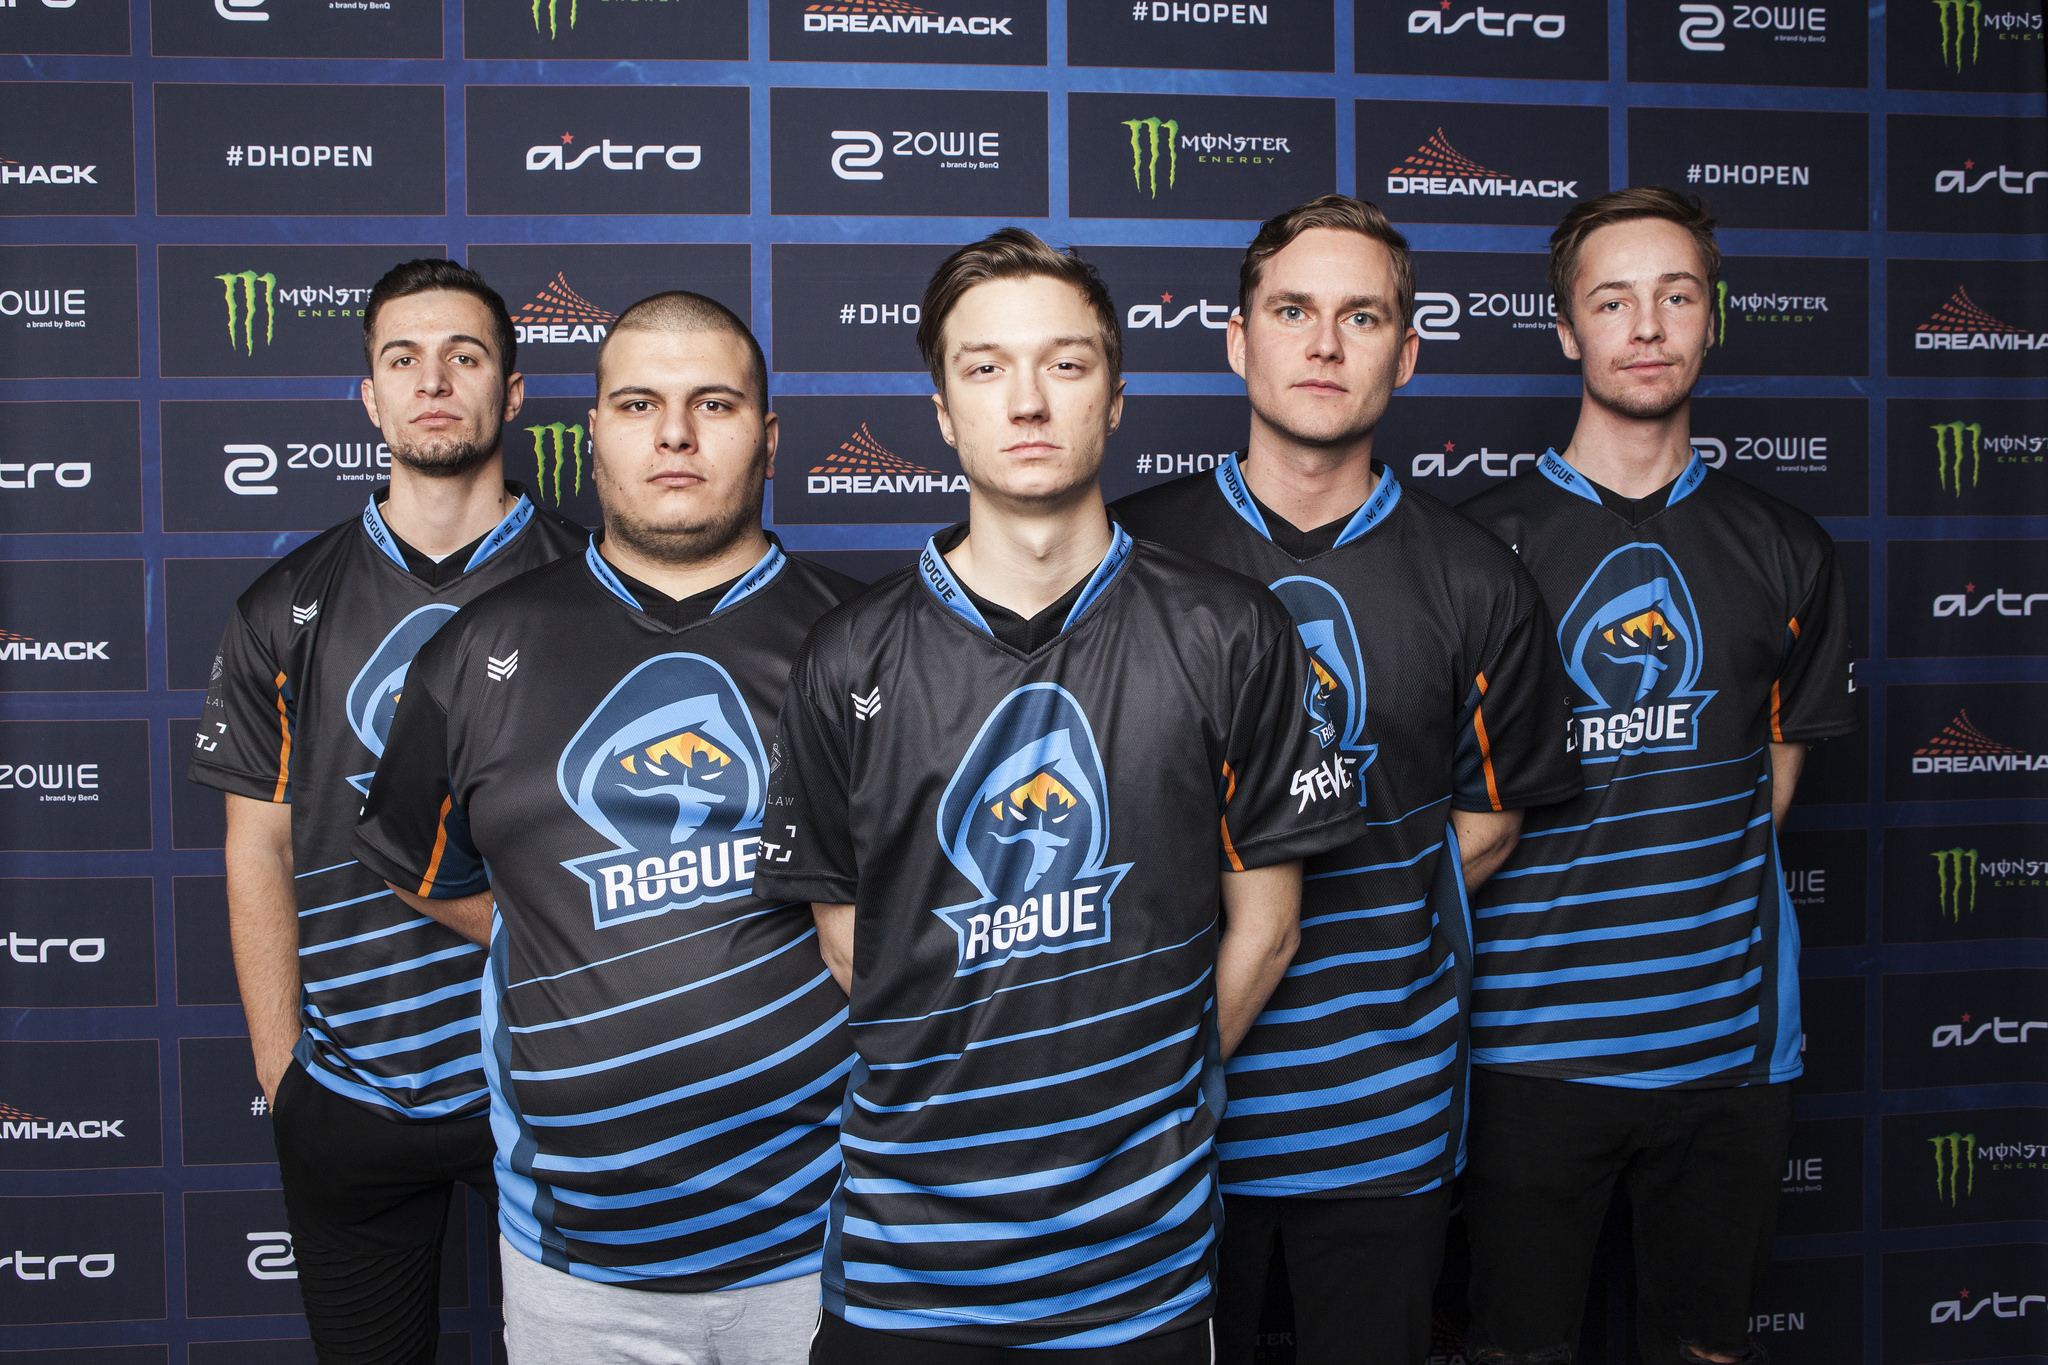 Rogue removes glace from active lineup